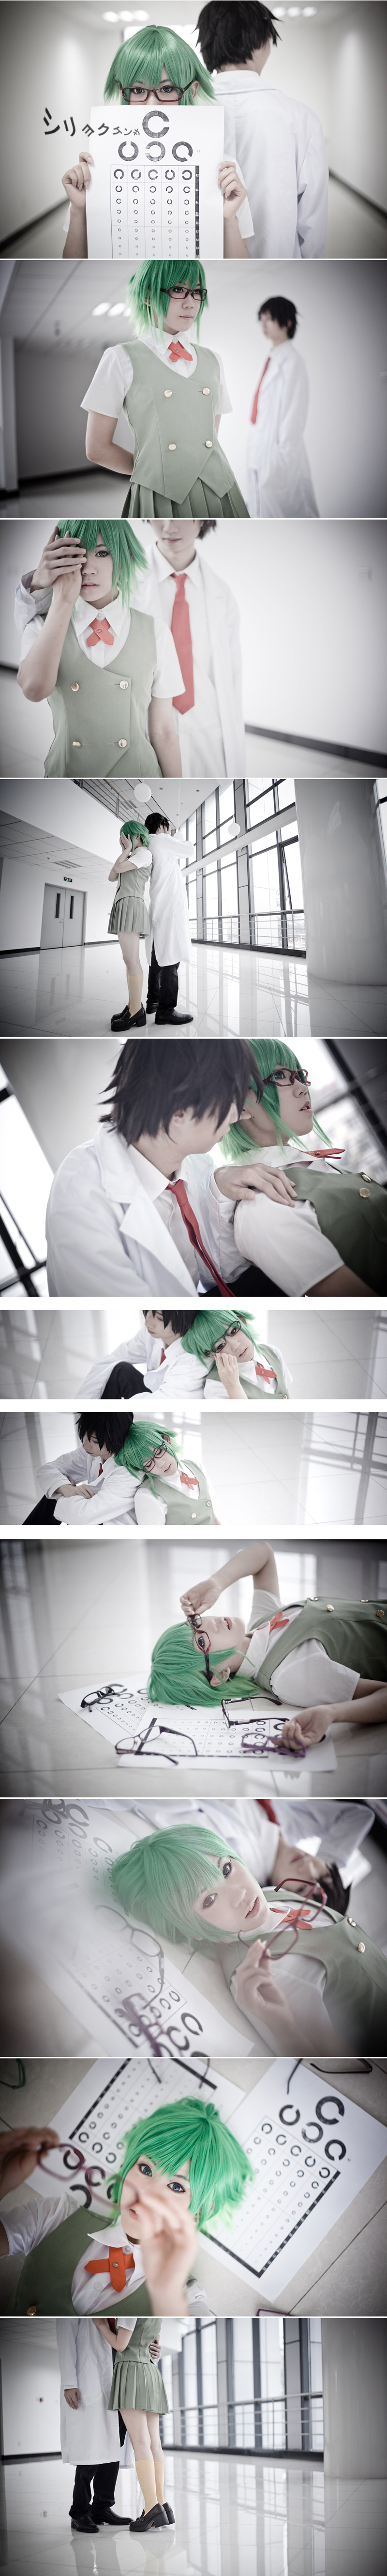 VOCALOID2-GUMI Eyesight Test by Sakina666